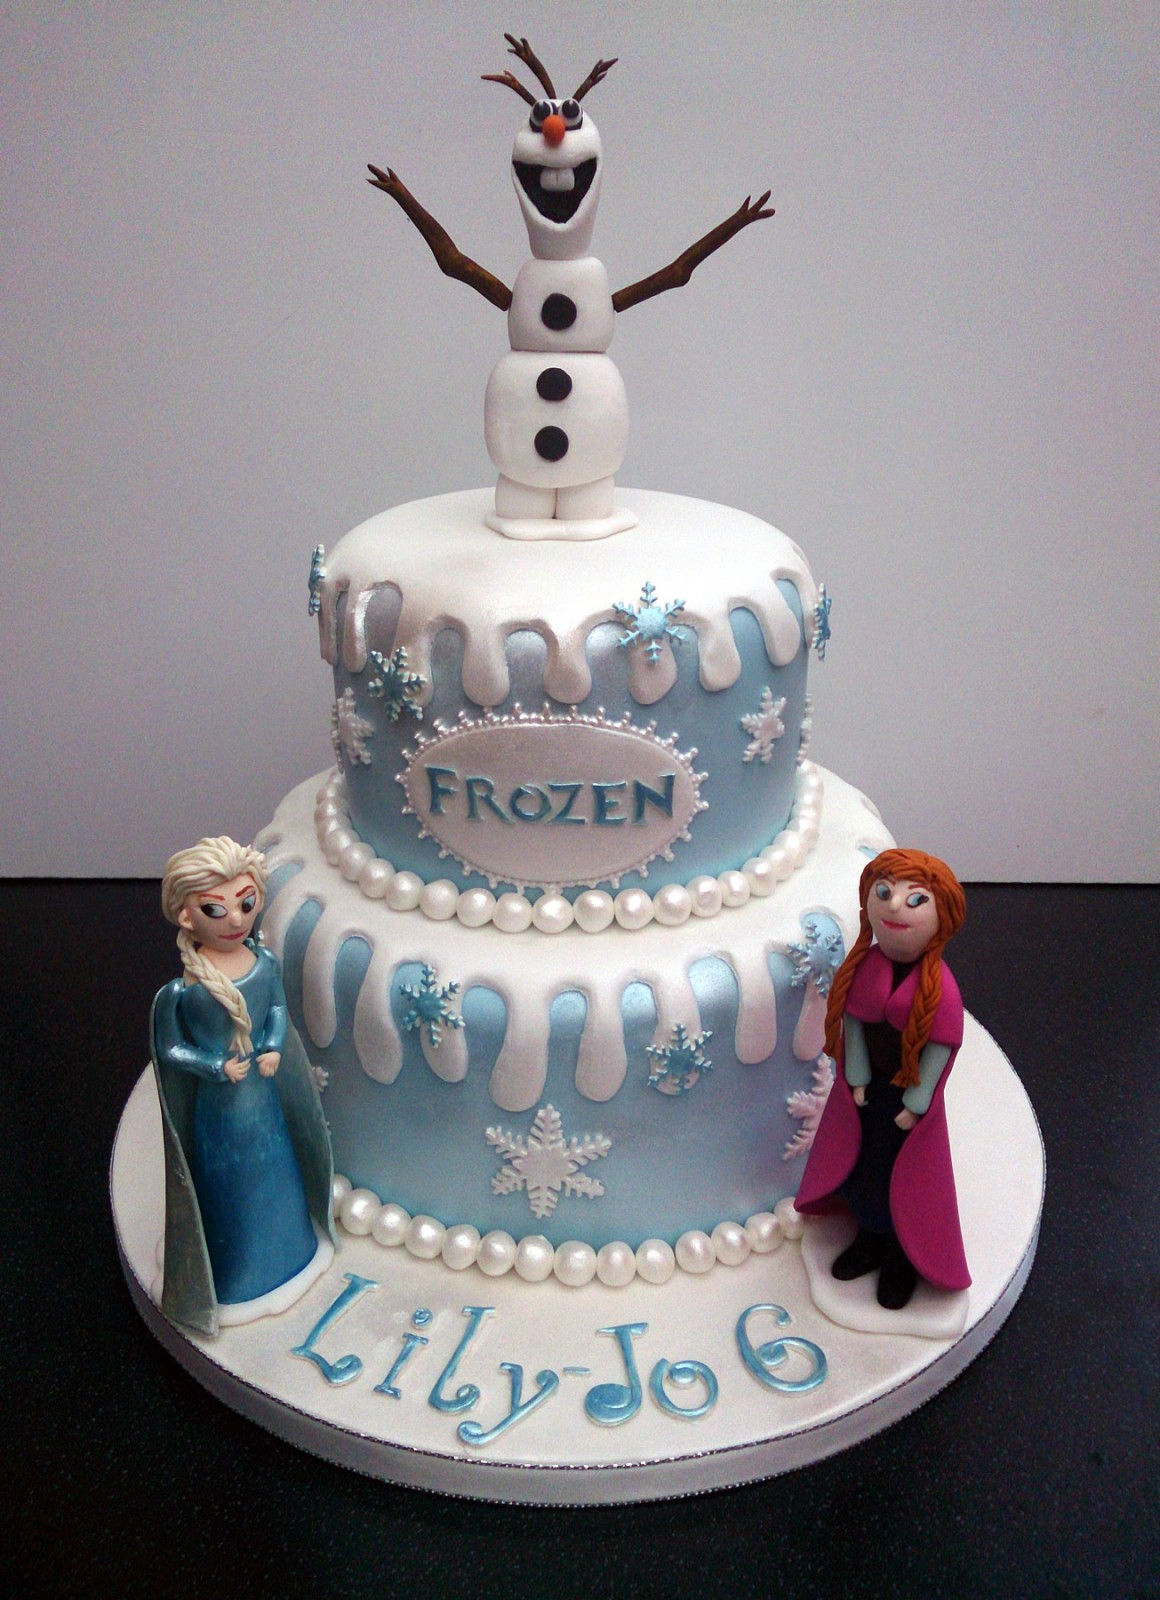 Disney Frozen Themed Cake With Olaf Anna and Elsa « Susies Cakes